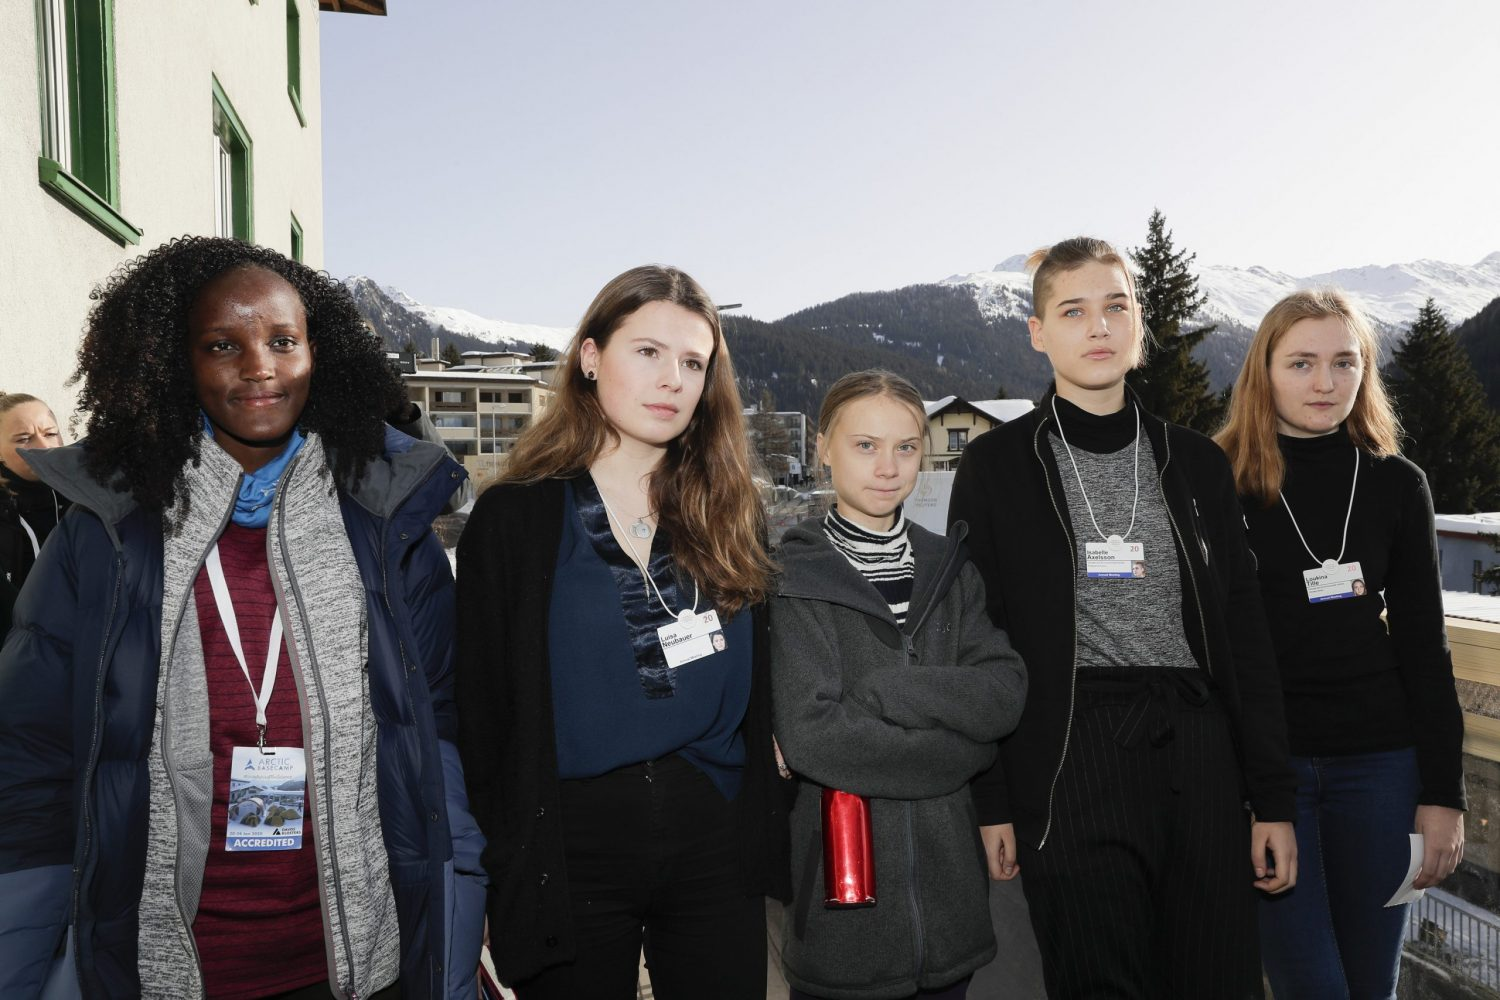 Vanessa Nakate in Original Group Photo from Davos